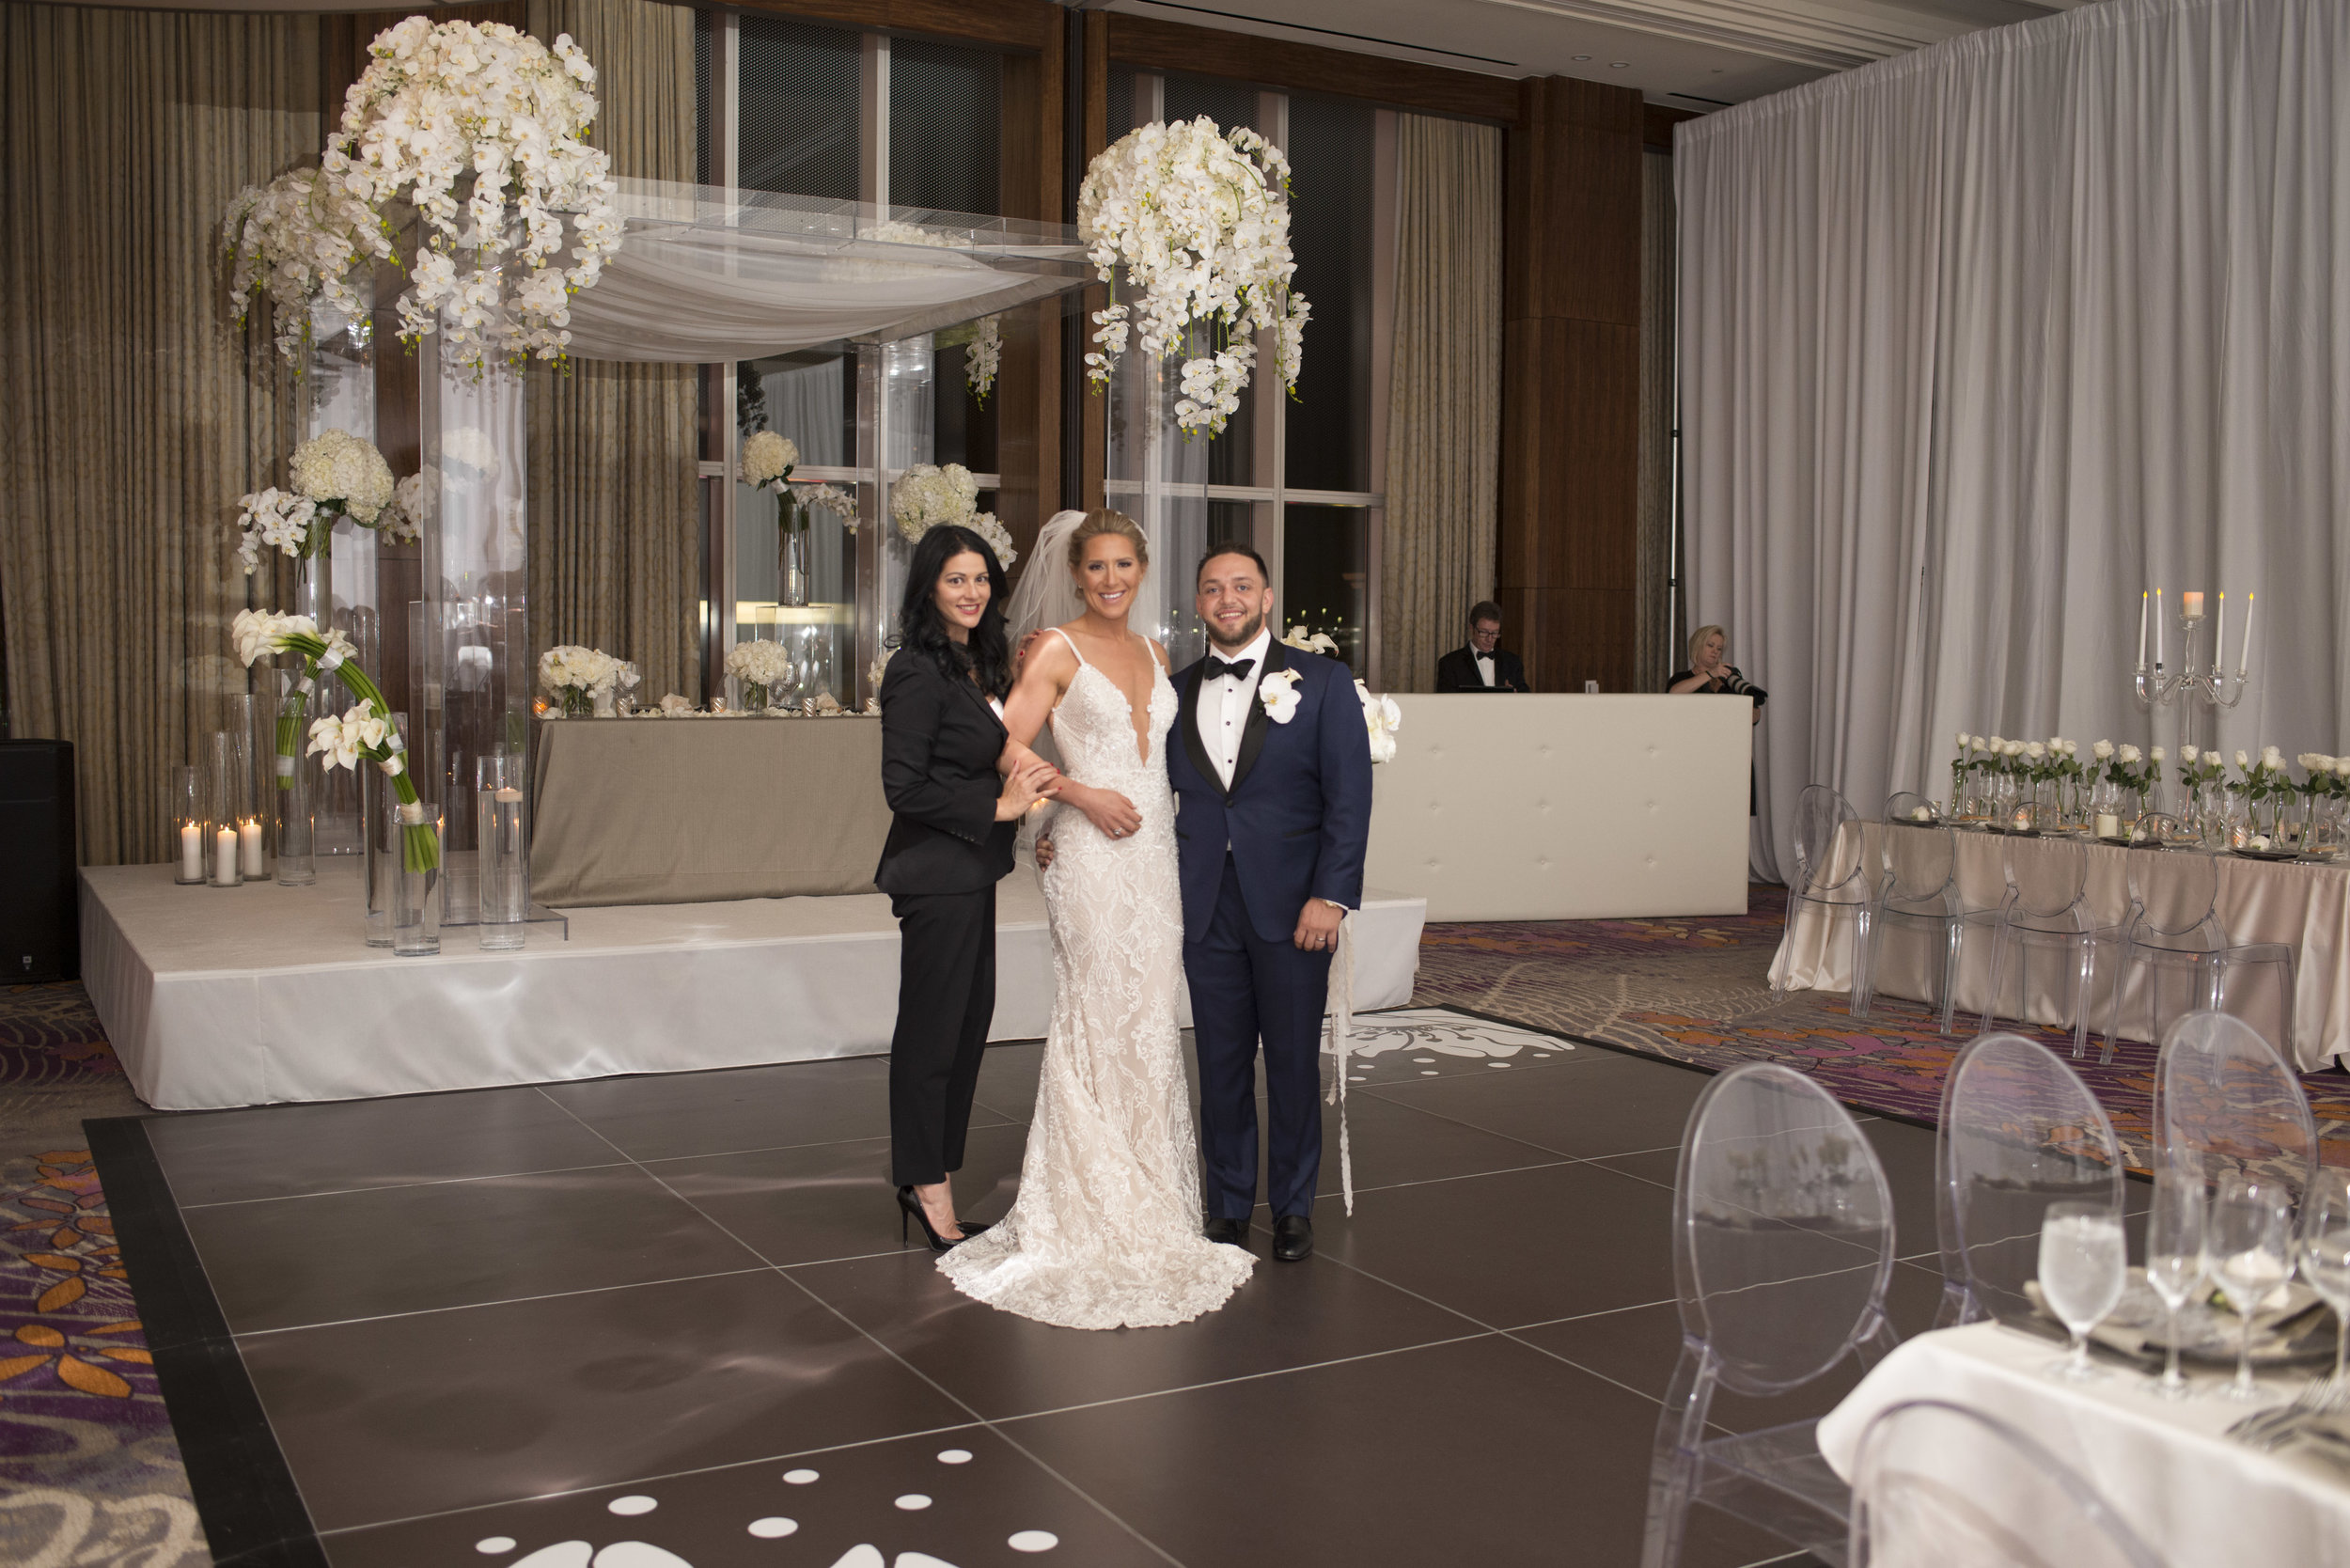 Destination Wedding Planner Andrea Eppolito with bride Candice and groom Ben at their luxury jewish wedding.WEDDING PLANNING & EVENT DESIGN • Andrea Eppolito Events ,PHOTOGRAPHY • AltF Photography ,FLORAL AND DECOR DESIGN & PRODUCTION • Destinations by Design , CATERING • Mandarin Oriental Las Vegas , COCKTAILS •  The Grand Bevy , WEDDING GOWN •  Galia Lahav ,SHOES •  Jimmy Choo , ACRYLIC MENUS & SEATING CHART•  She Paperie